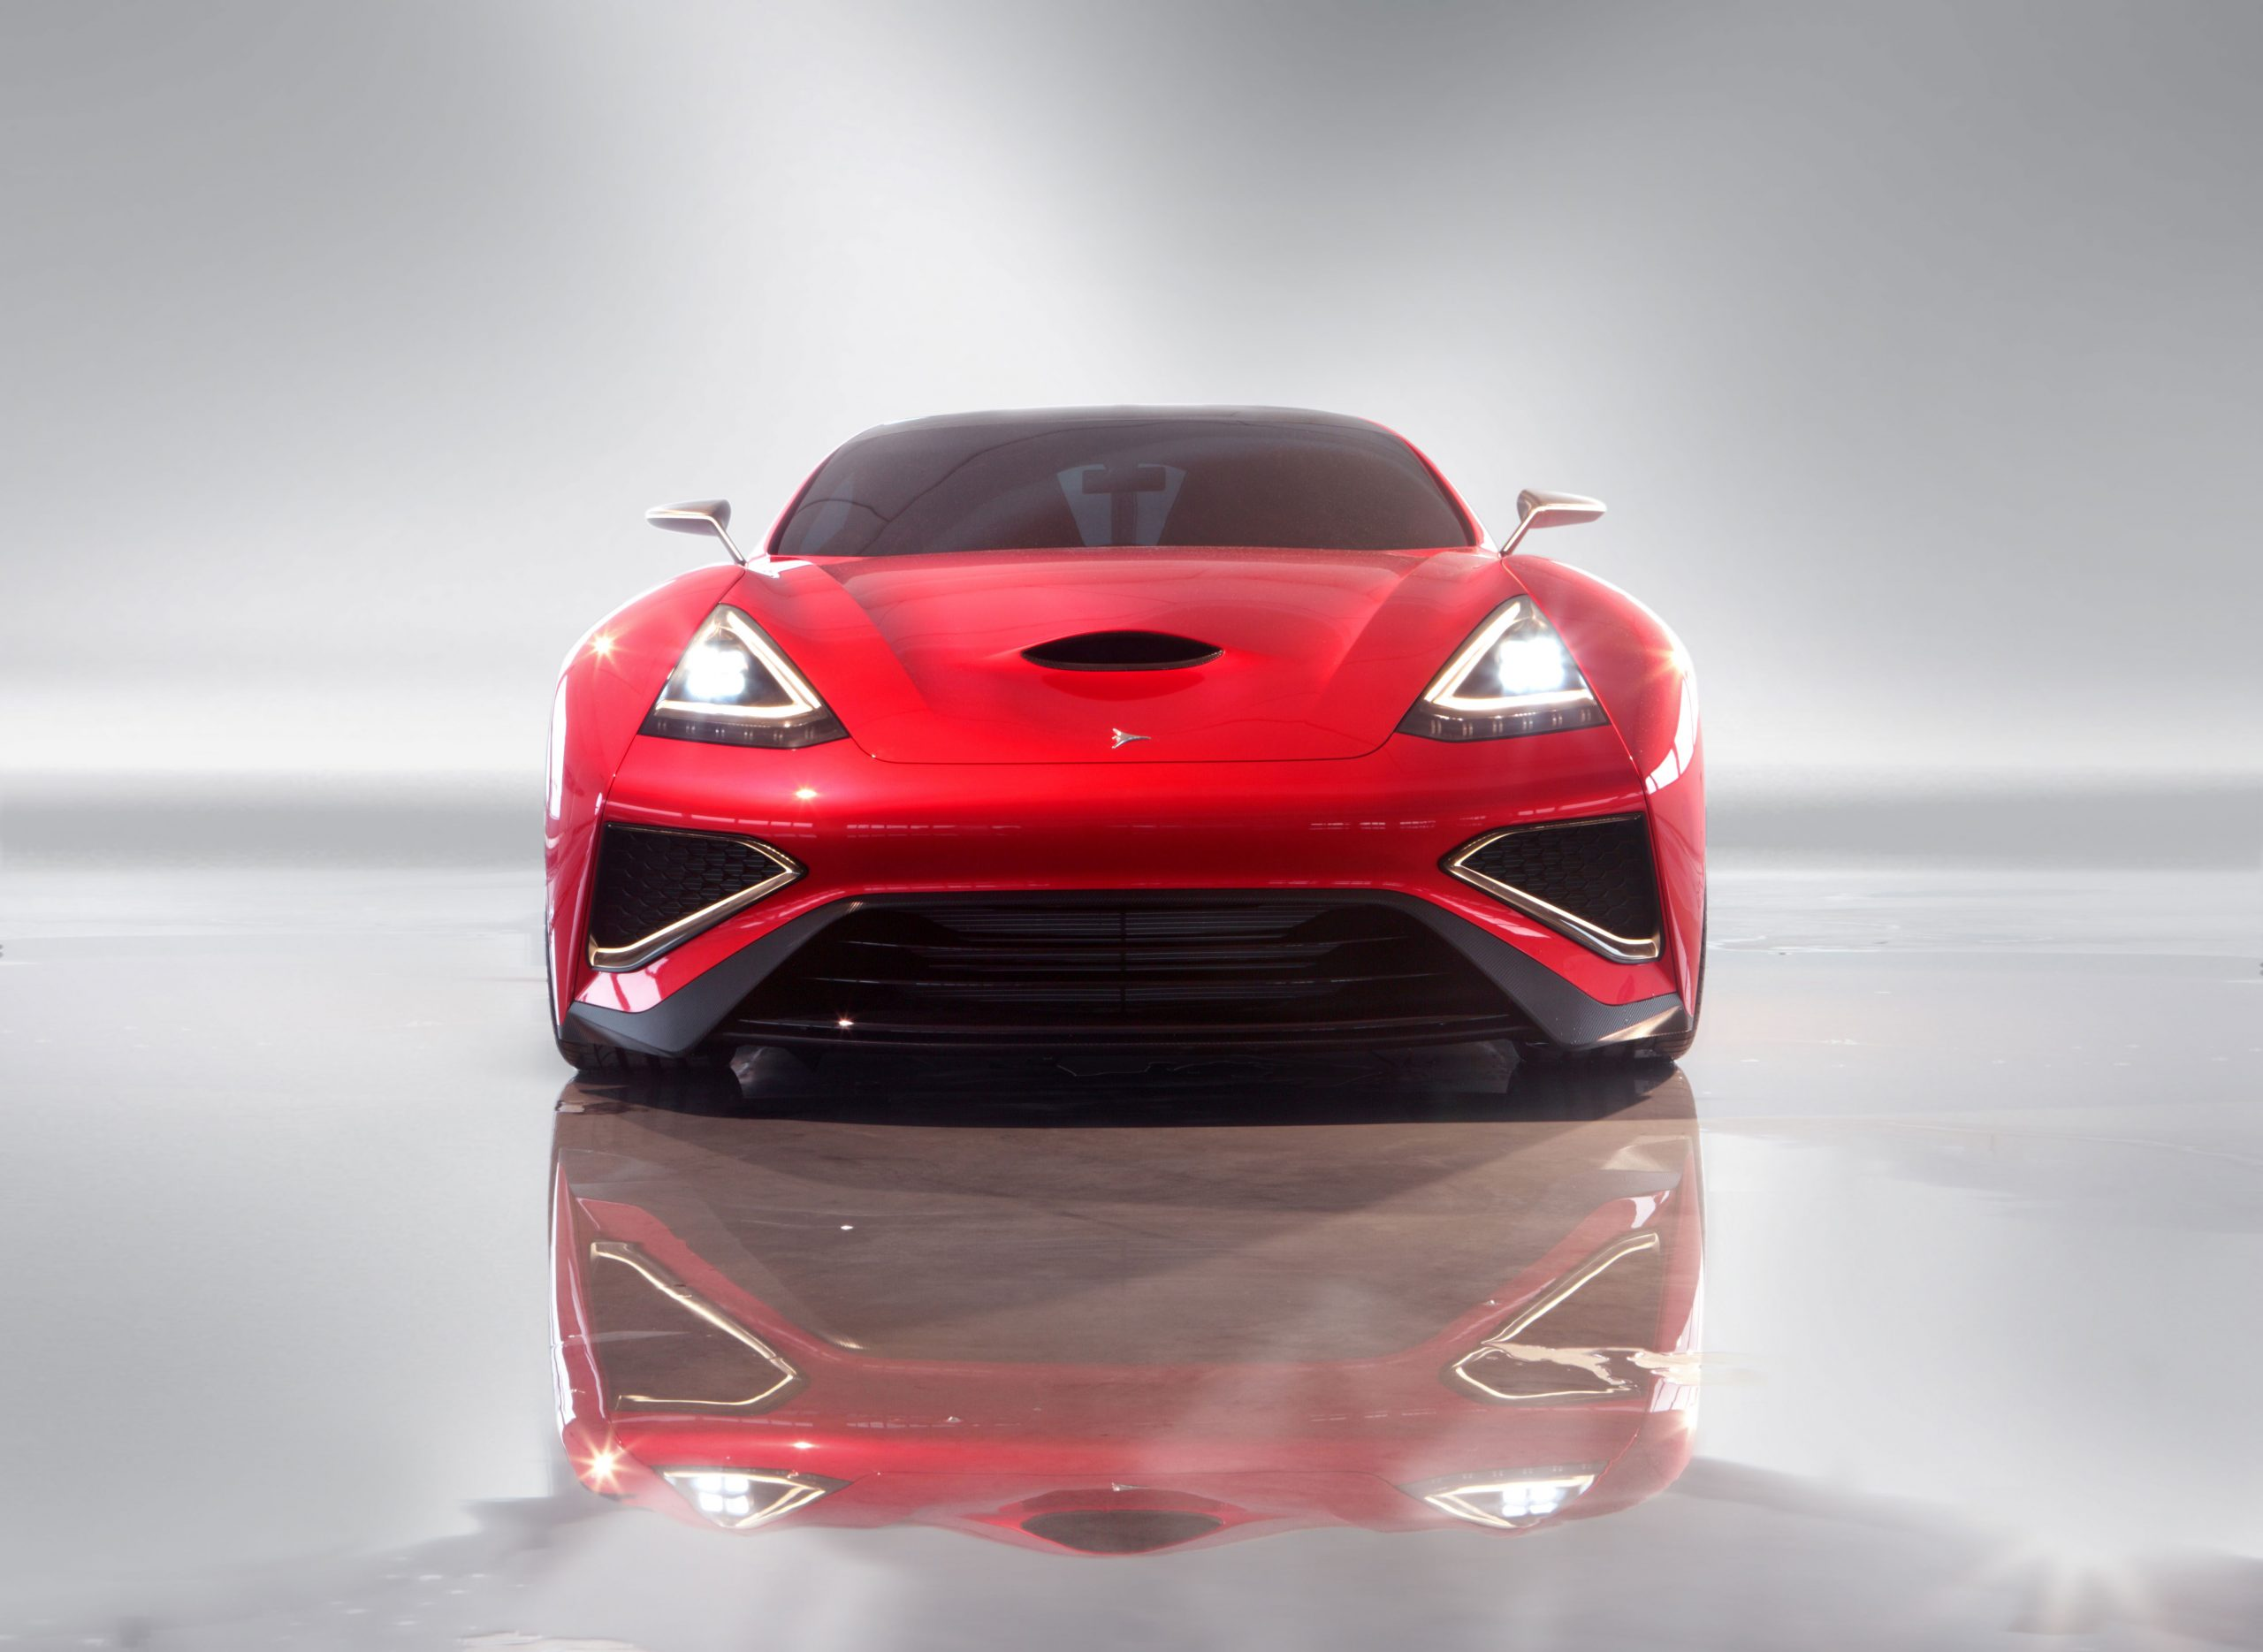 The Icona Vulcano is the World's 1st One-of-a-Kind Titanium Supercar